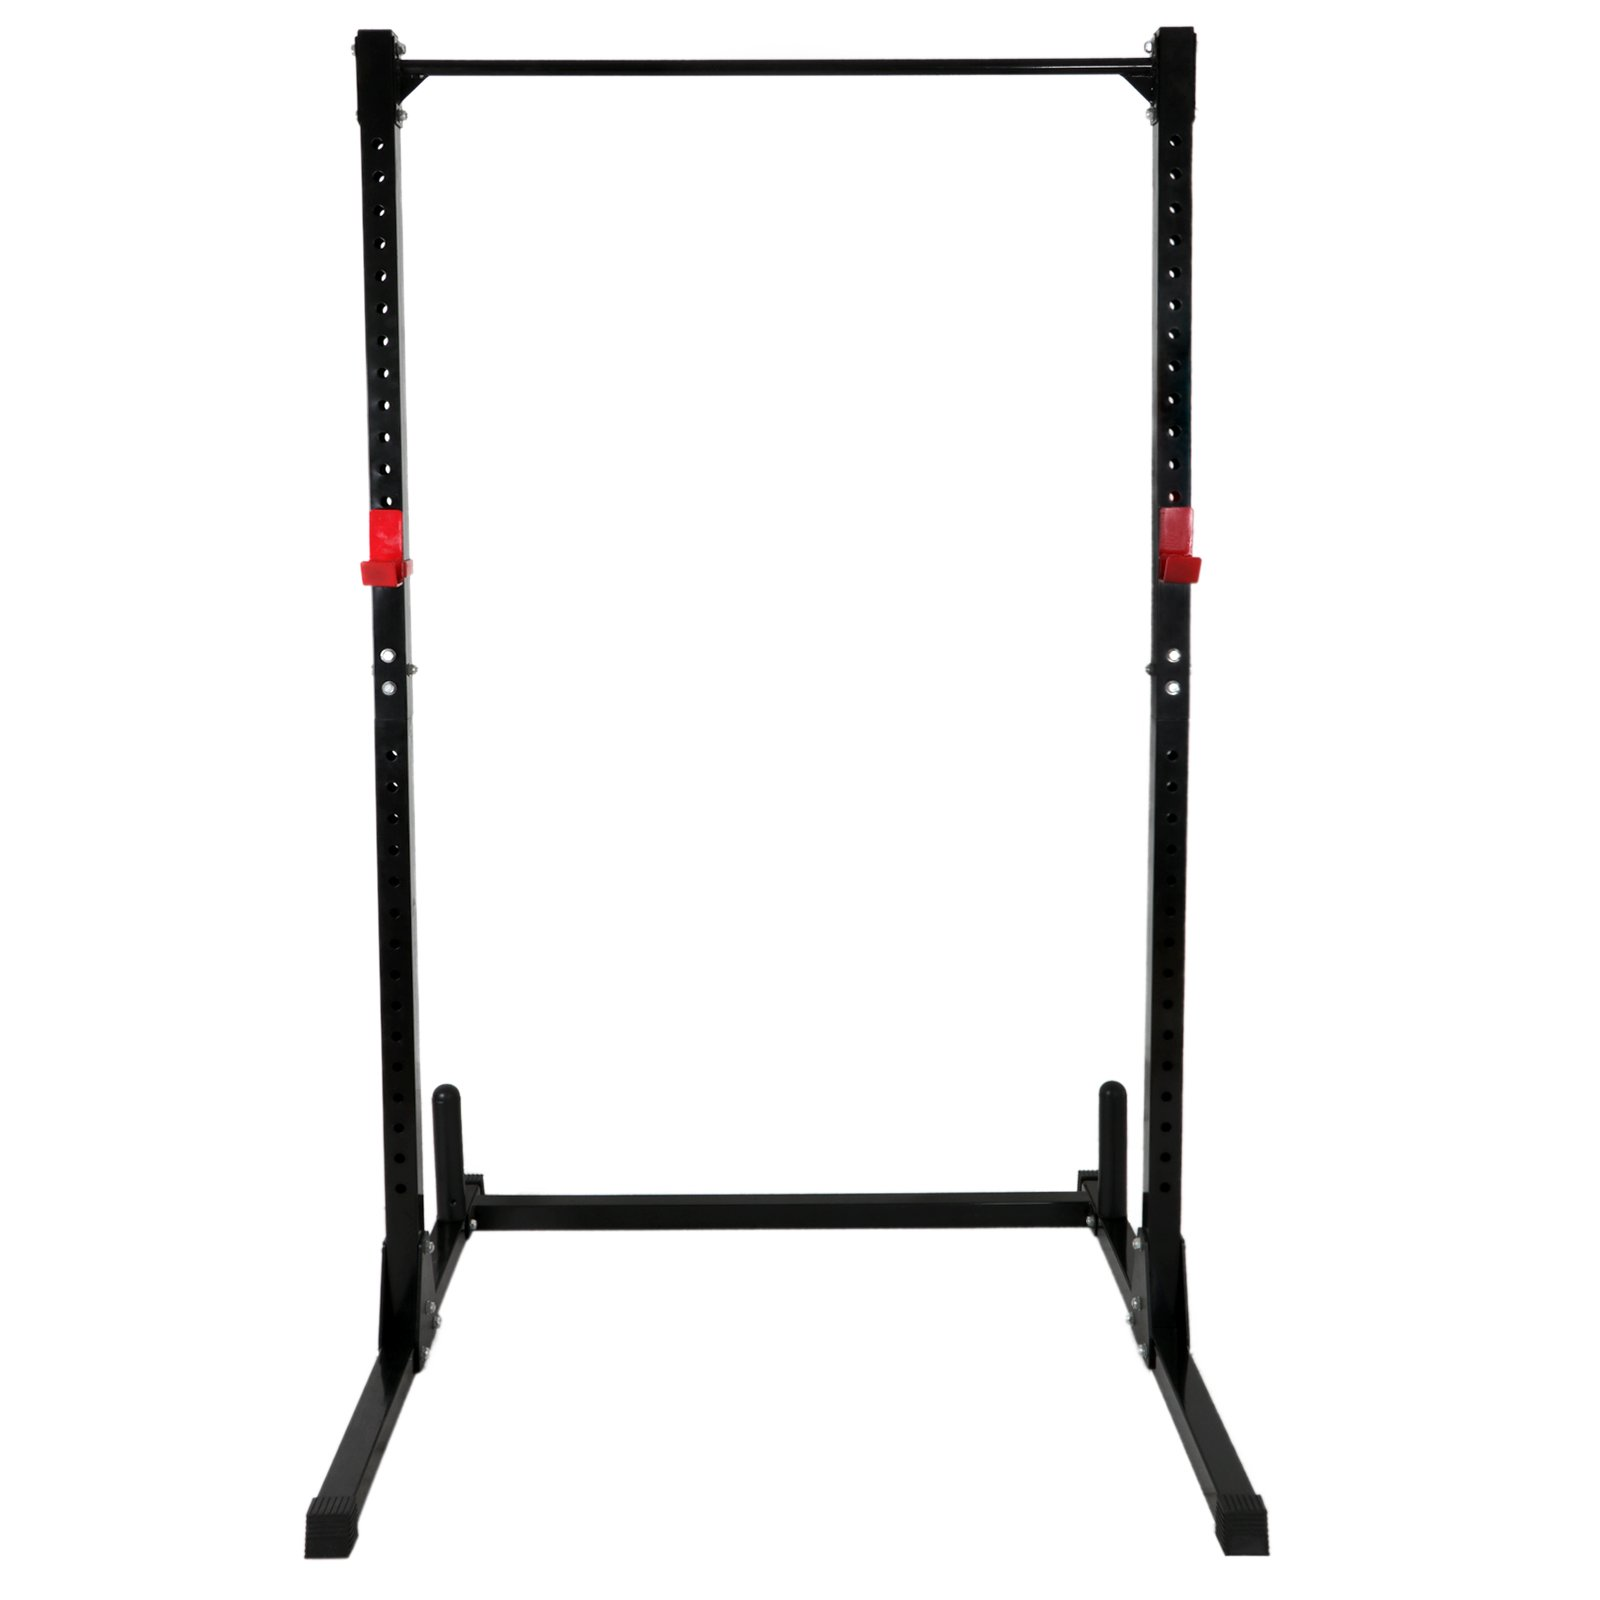 BBBuy Strength Power Lifting Rack Squat Bench Deadlift Curl Pull Up Cage Weight Stand Power Rack by BBBuy